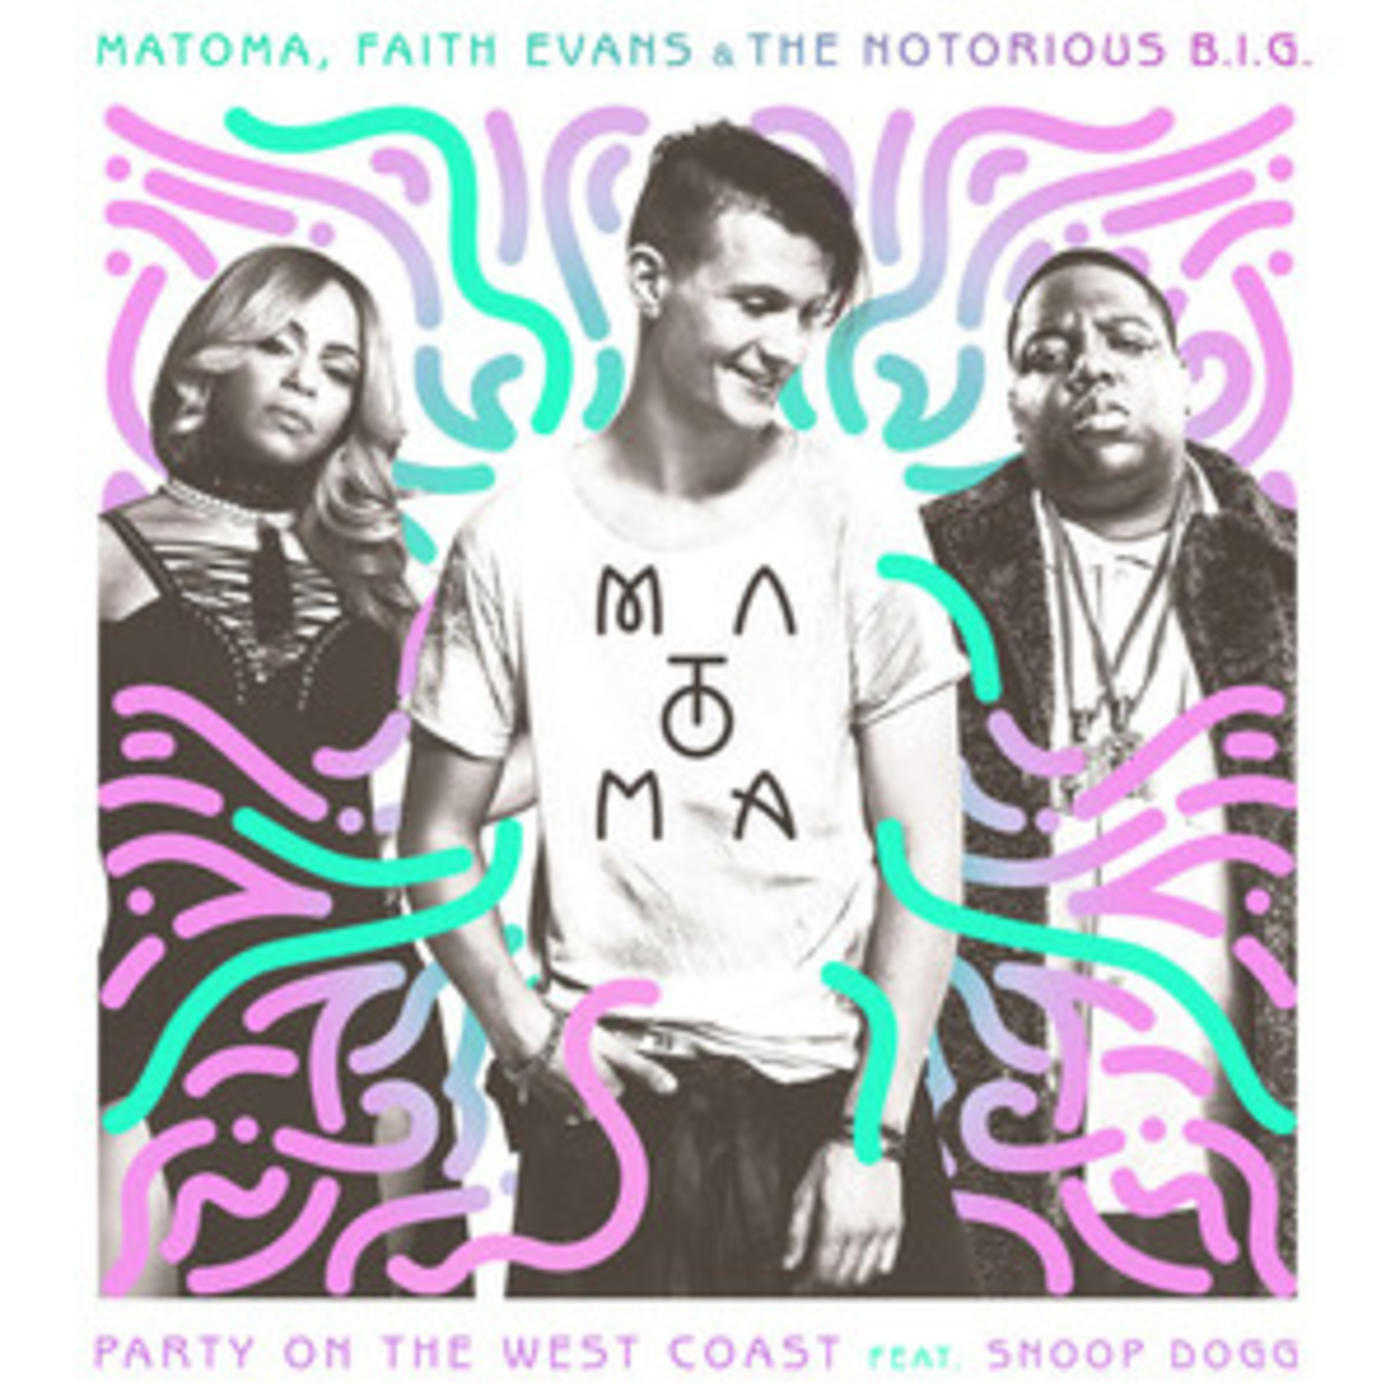 The King & I + Matoma, Faith Evans, Snoop Dogg - Party On The West Coast, plus Biggie's best tracks